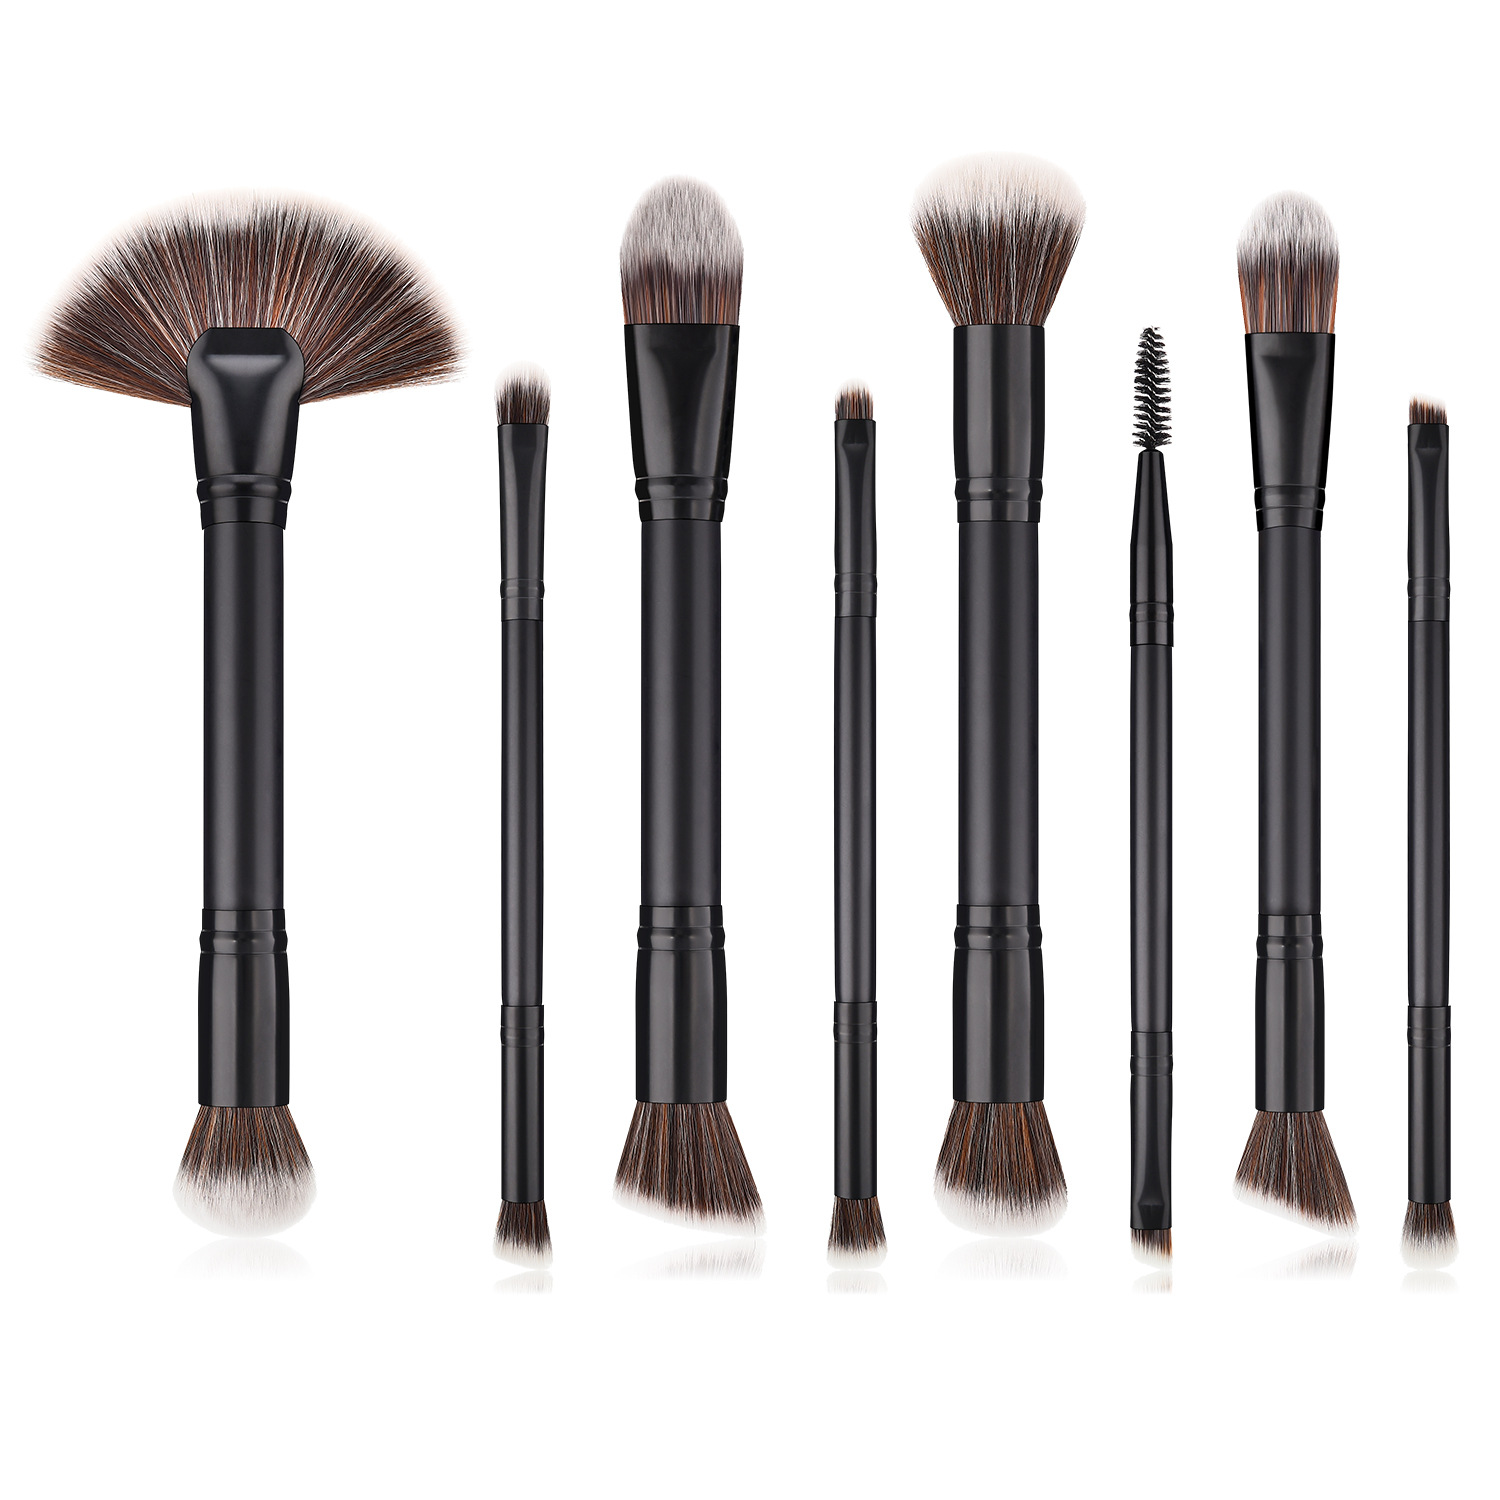 8 pcs Duo end makeup brush